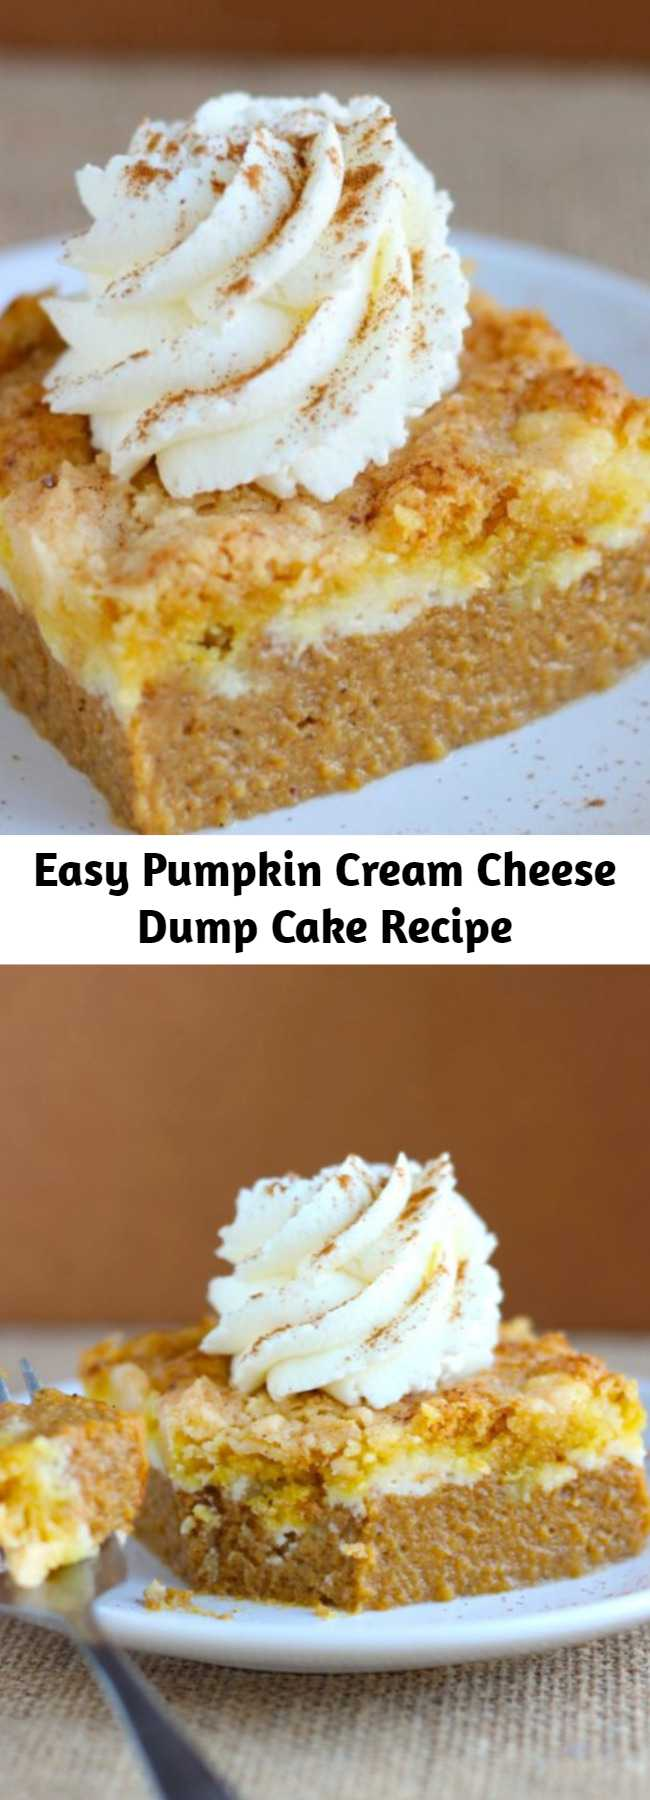 Pumpkin Cream Cheese Dump Cake Recipe - BETTER and way easier than pumpkin pie! This Pumpkin Cream Cheese Dump Cake is the best way to serve pumpkin pie to a crowd!